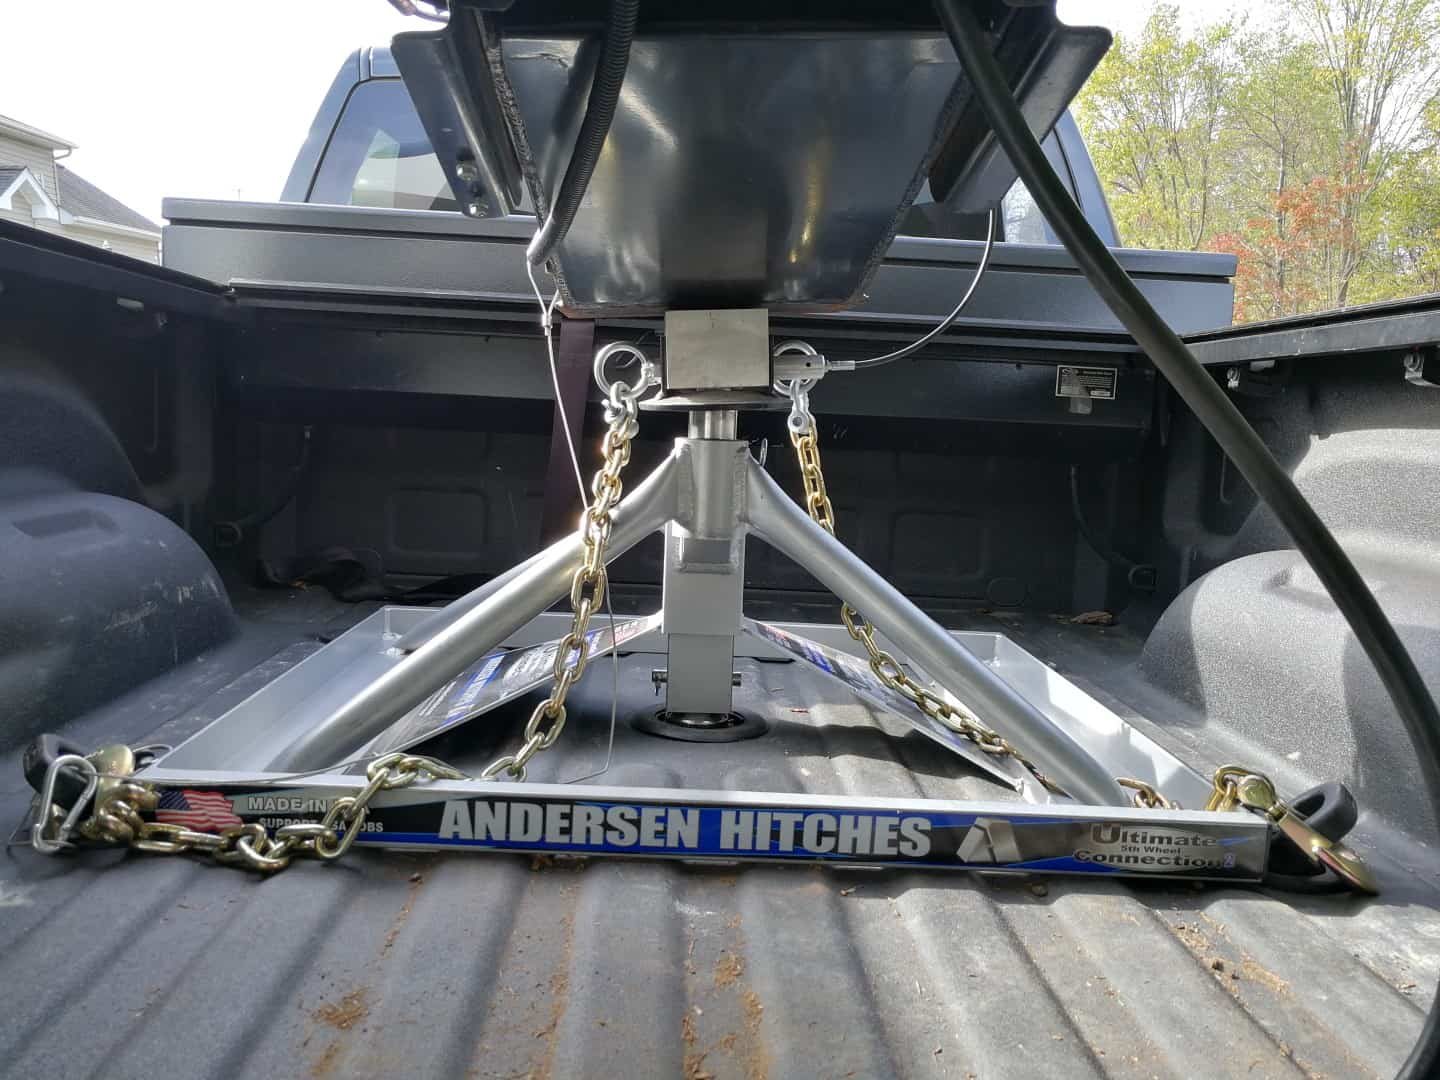 Andersen hitch and truck connected on uneven ground